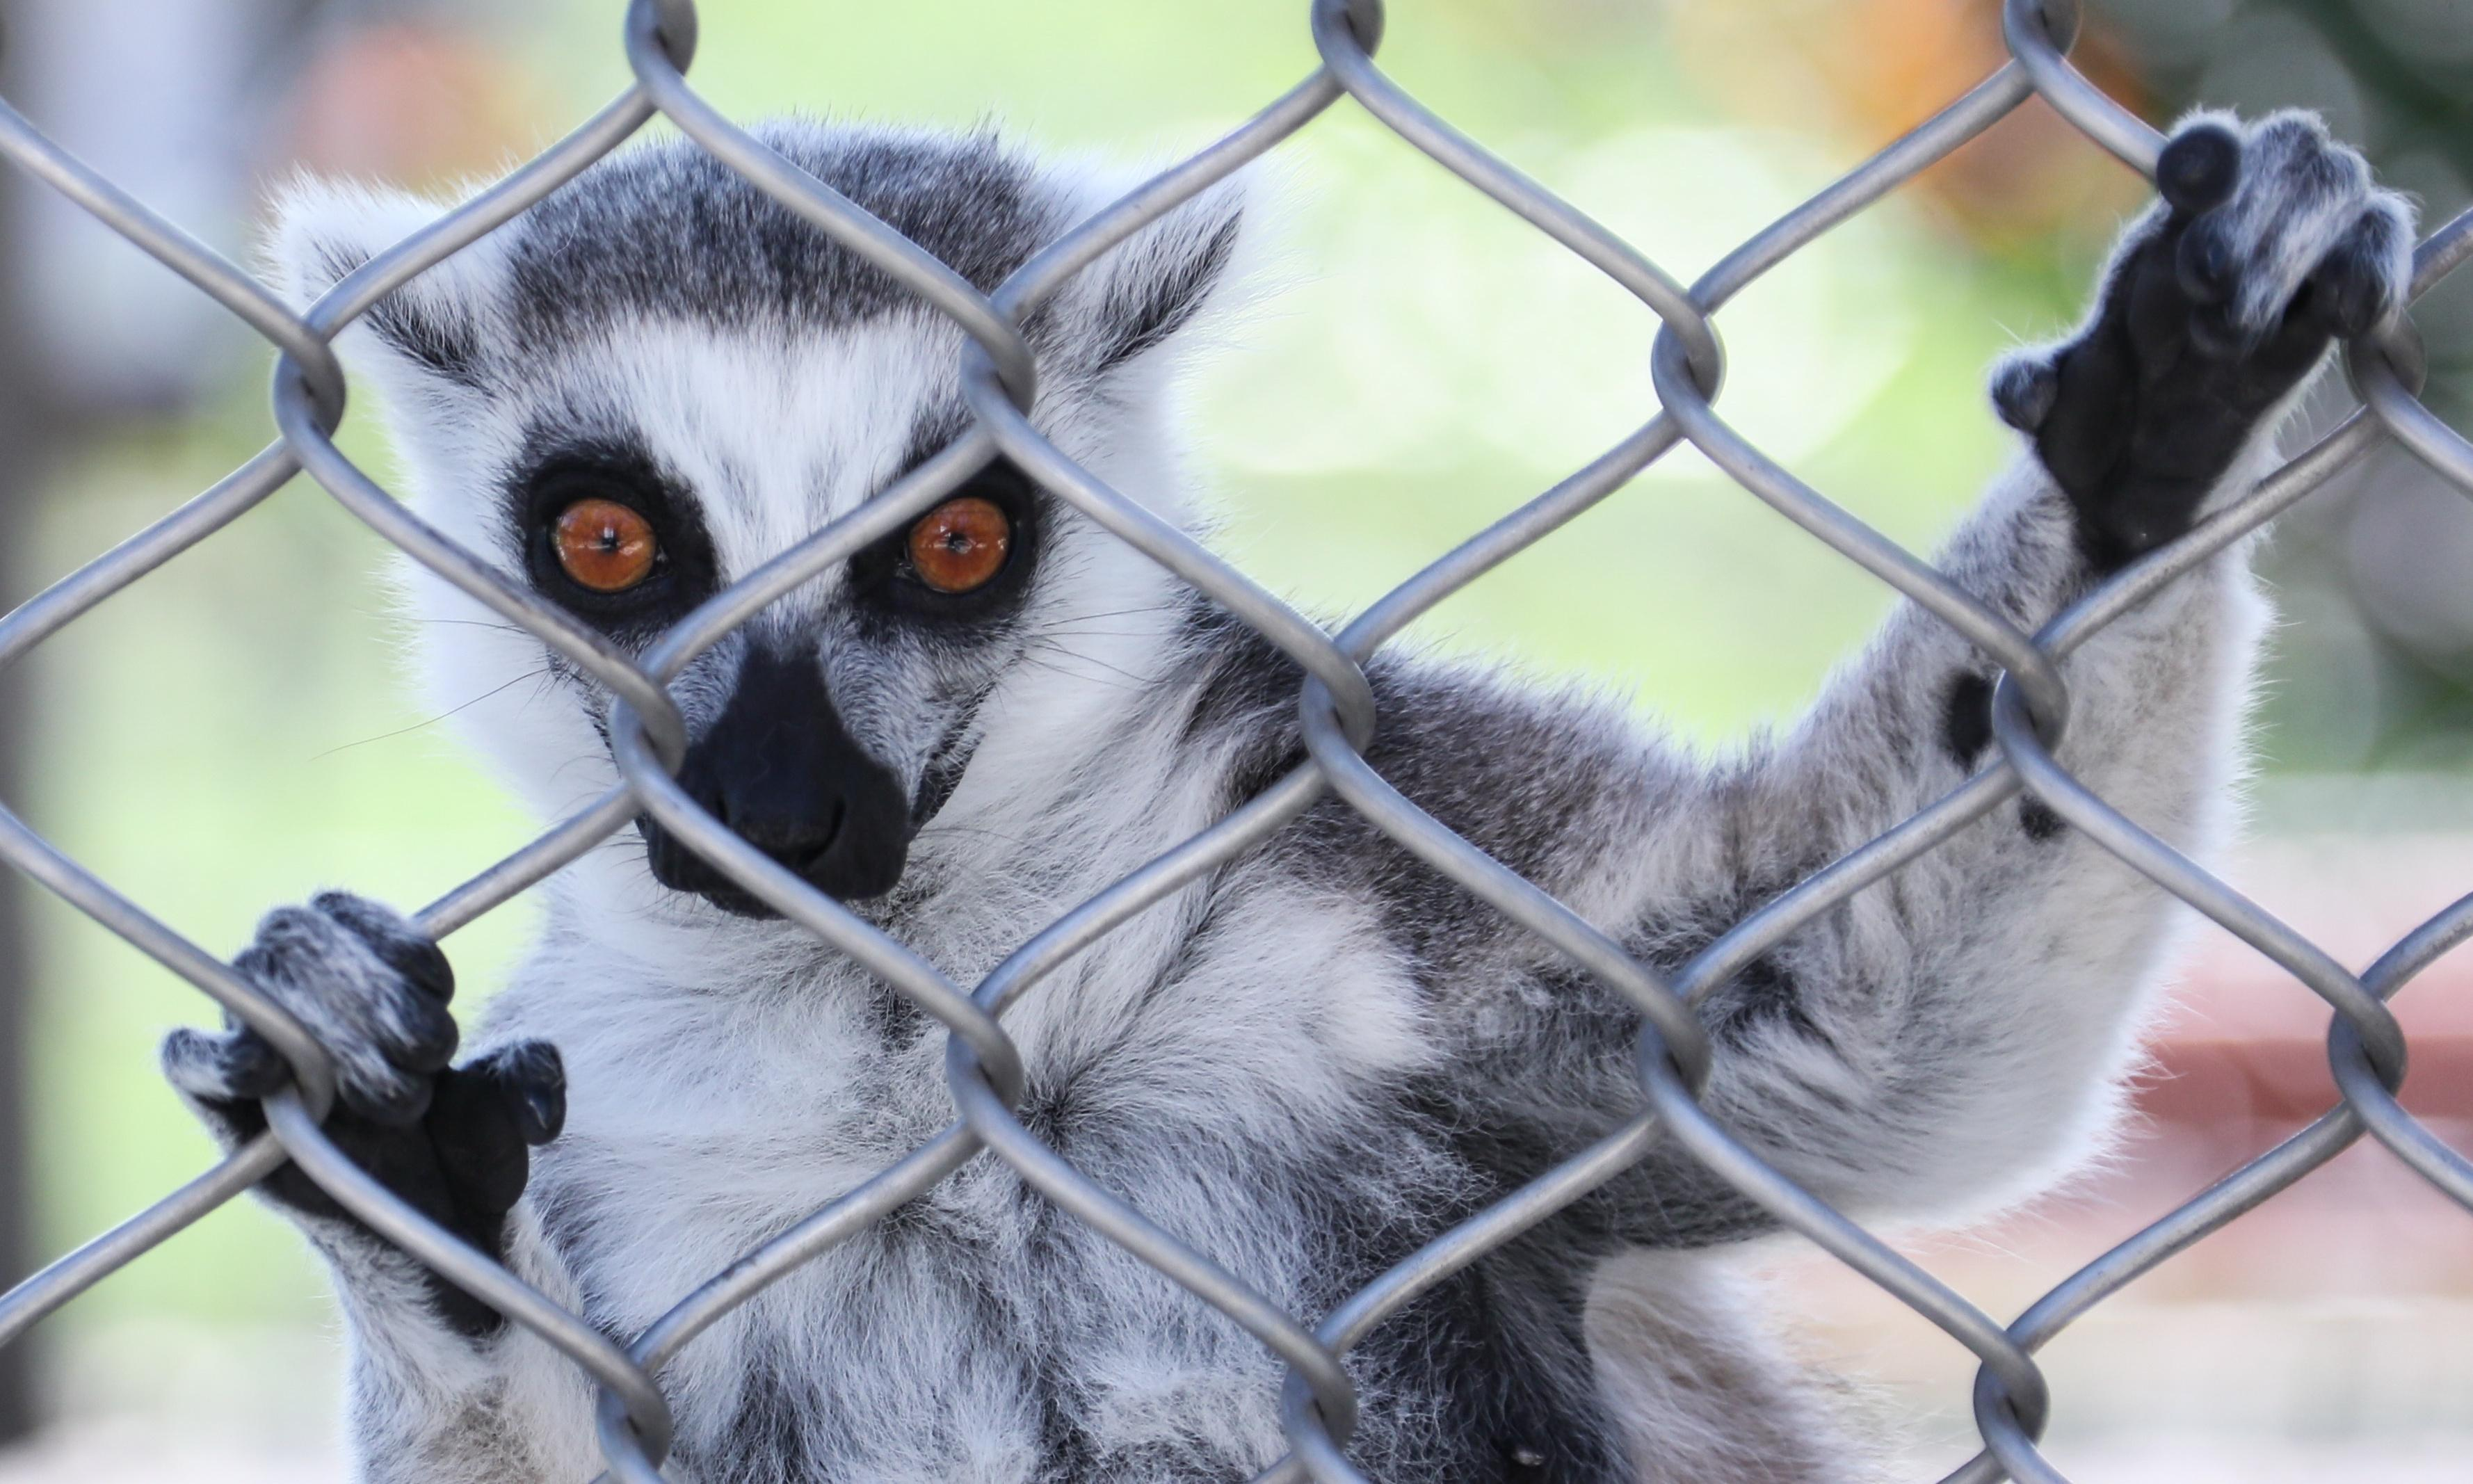 Case of the stolen lemur: man who took animal from US zoo wanted a monkey